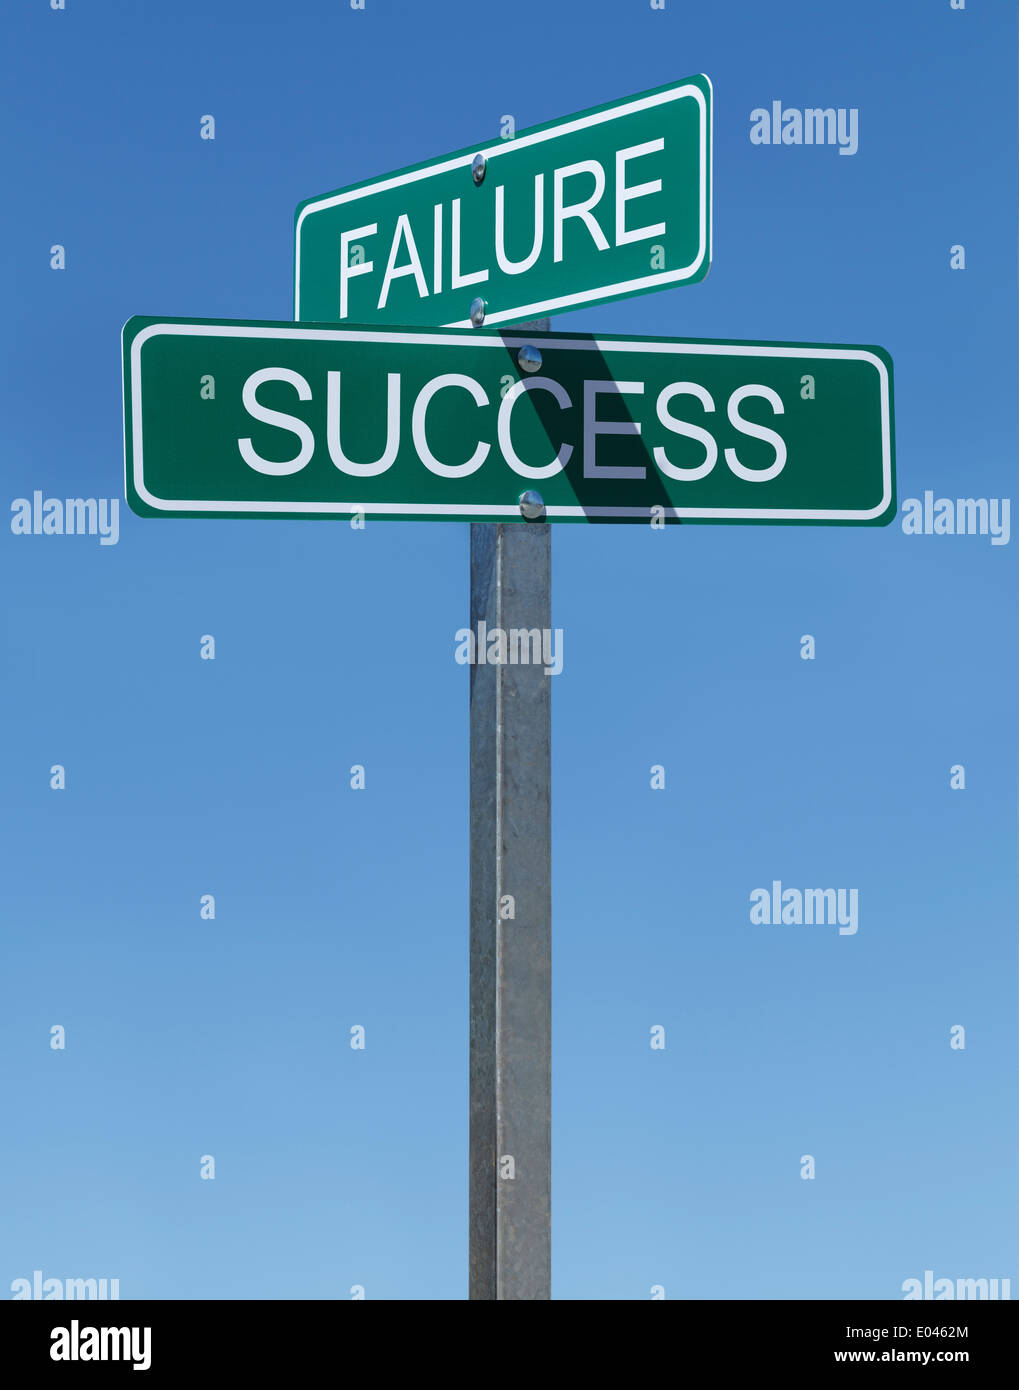 Two Green Street Signs Failure and Success on Metal Pole with Blue Sky Background. - Stock Image